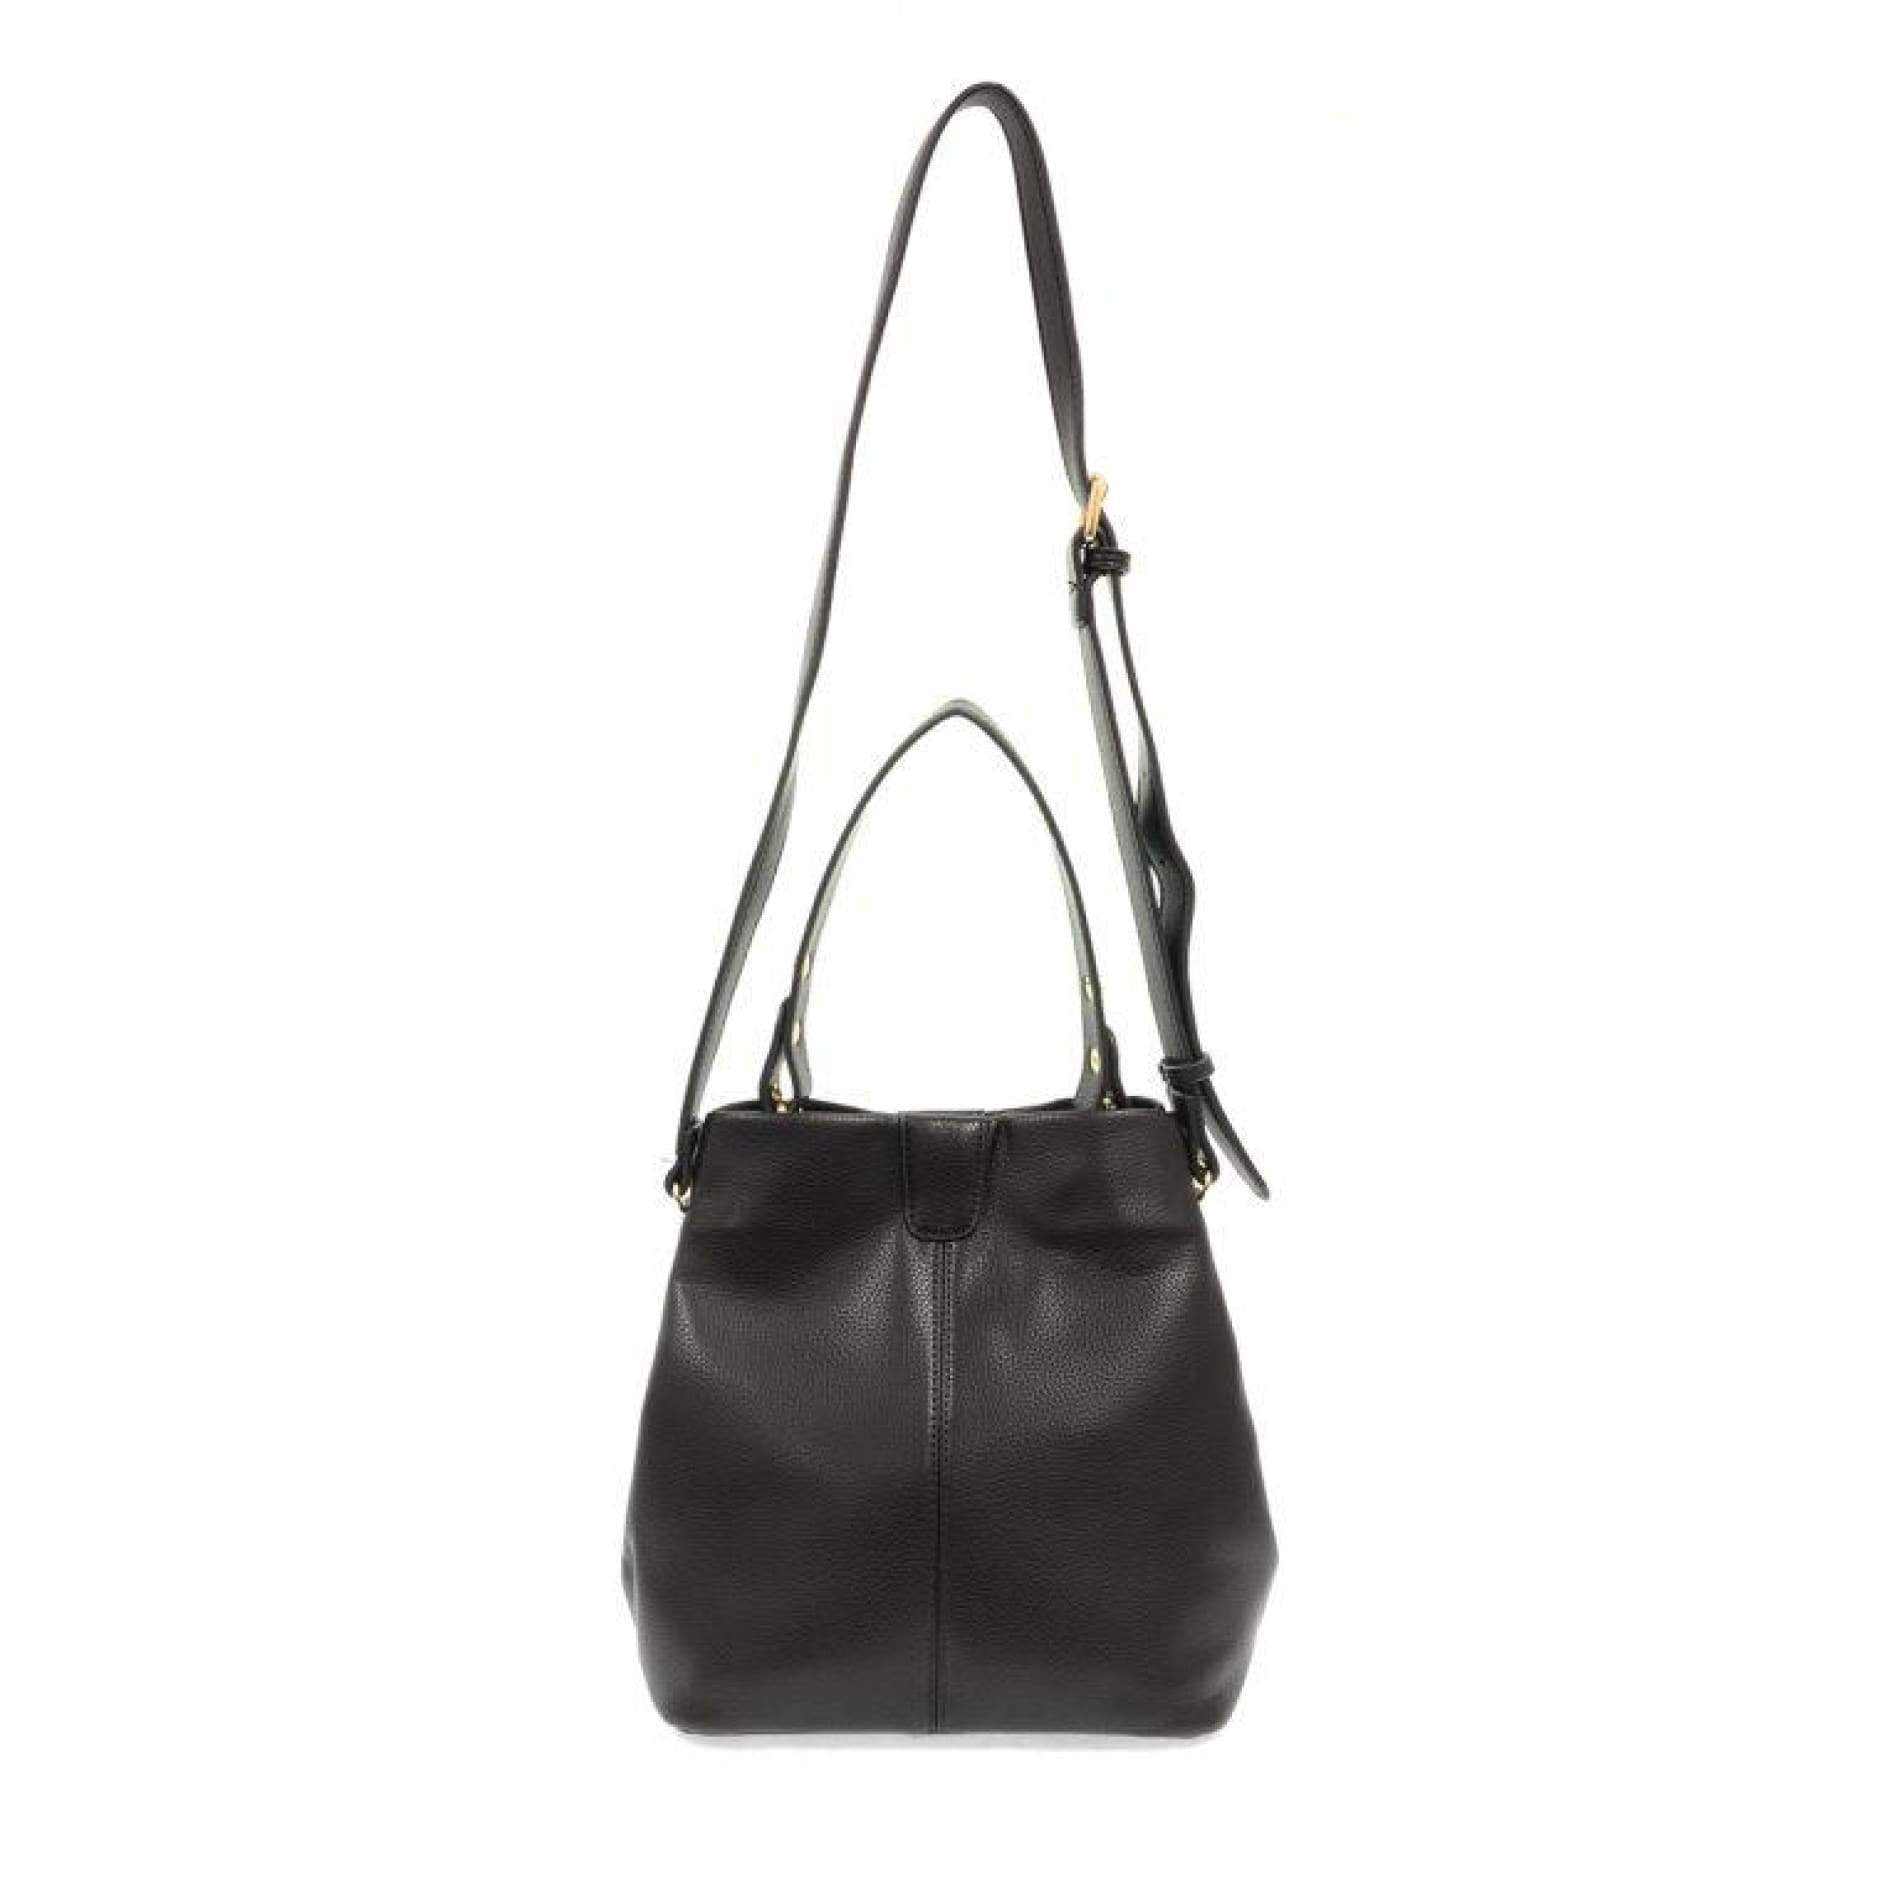 Ava Convertible Shoulder Bag - Black - Accessories